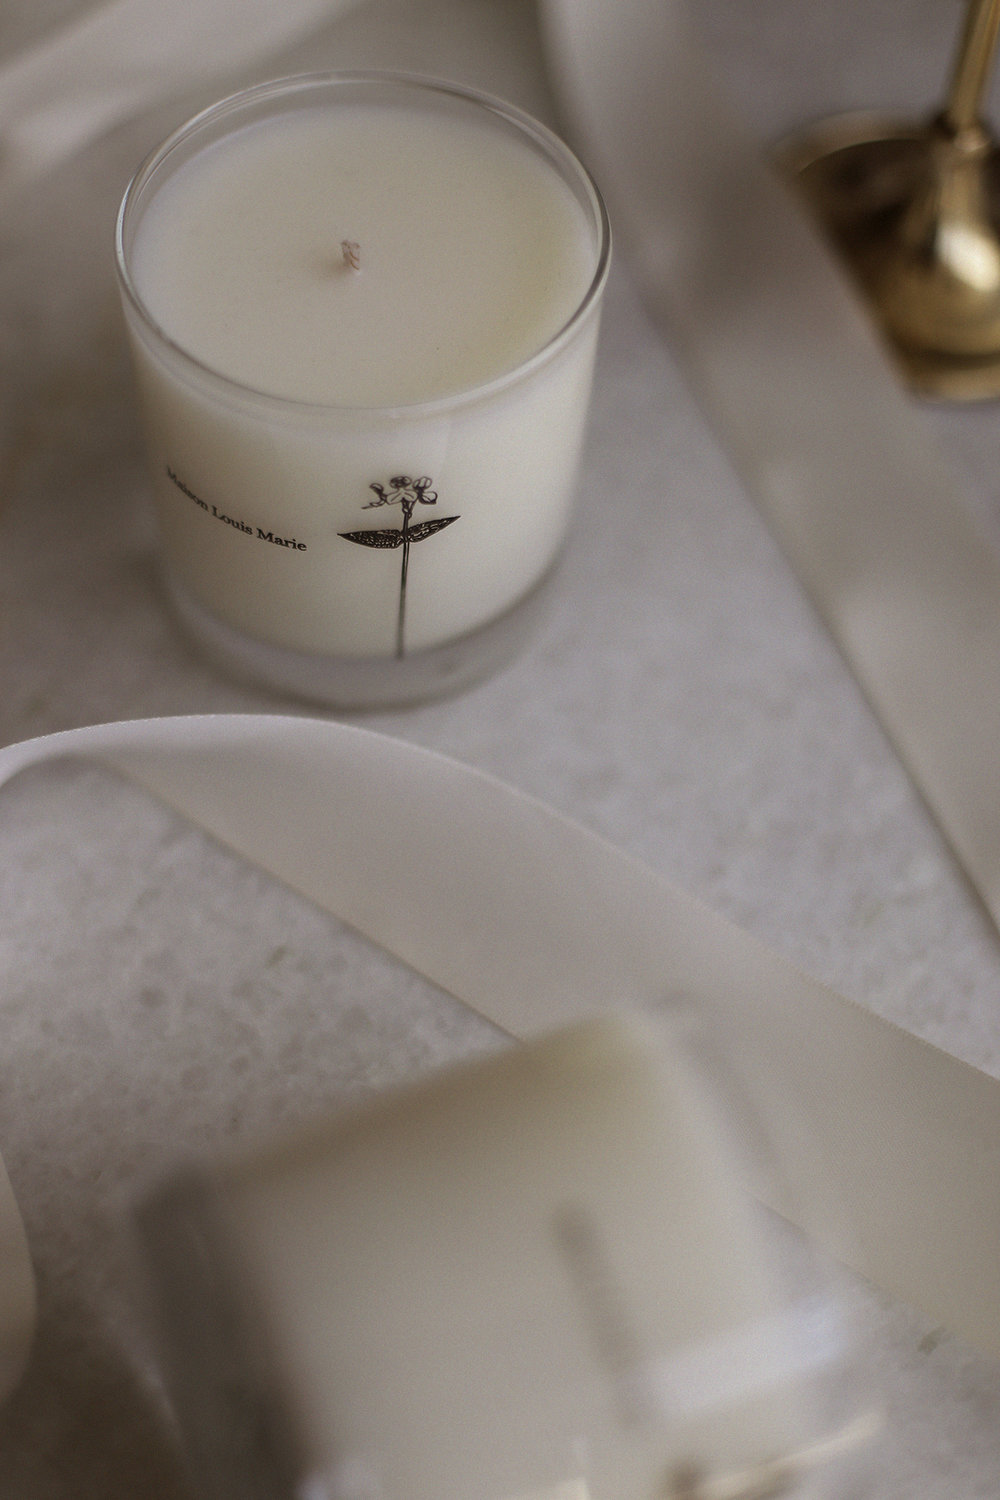 Maison Louis Marie Candle - I discovered this brand while I was in New York and fell in love with the simplicity. The Cassis scent is my absolute favourite and exudes a fruity note with an aromatic white rose and warm oakmoss base. I'm a believer that candles can warm both your heart and home so I love gifting them for special occasions.